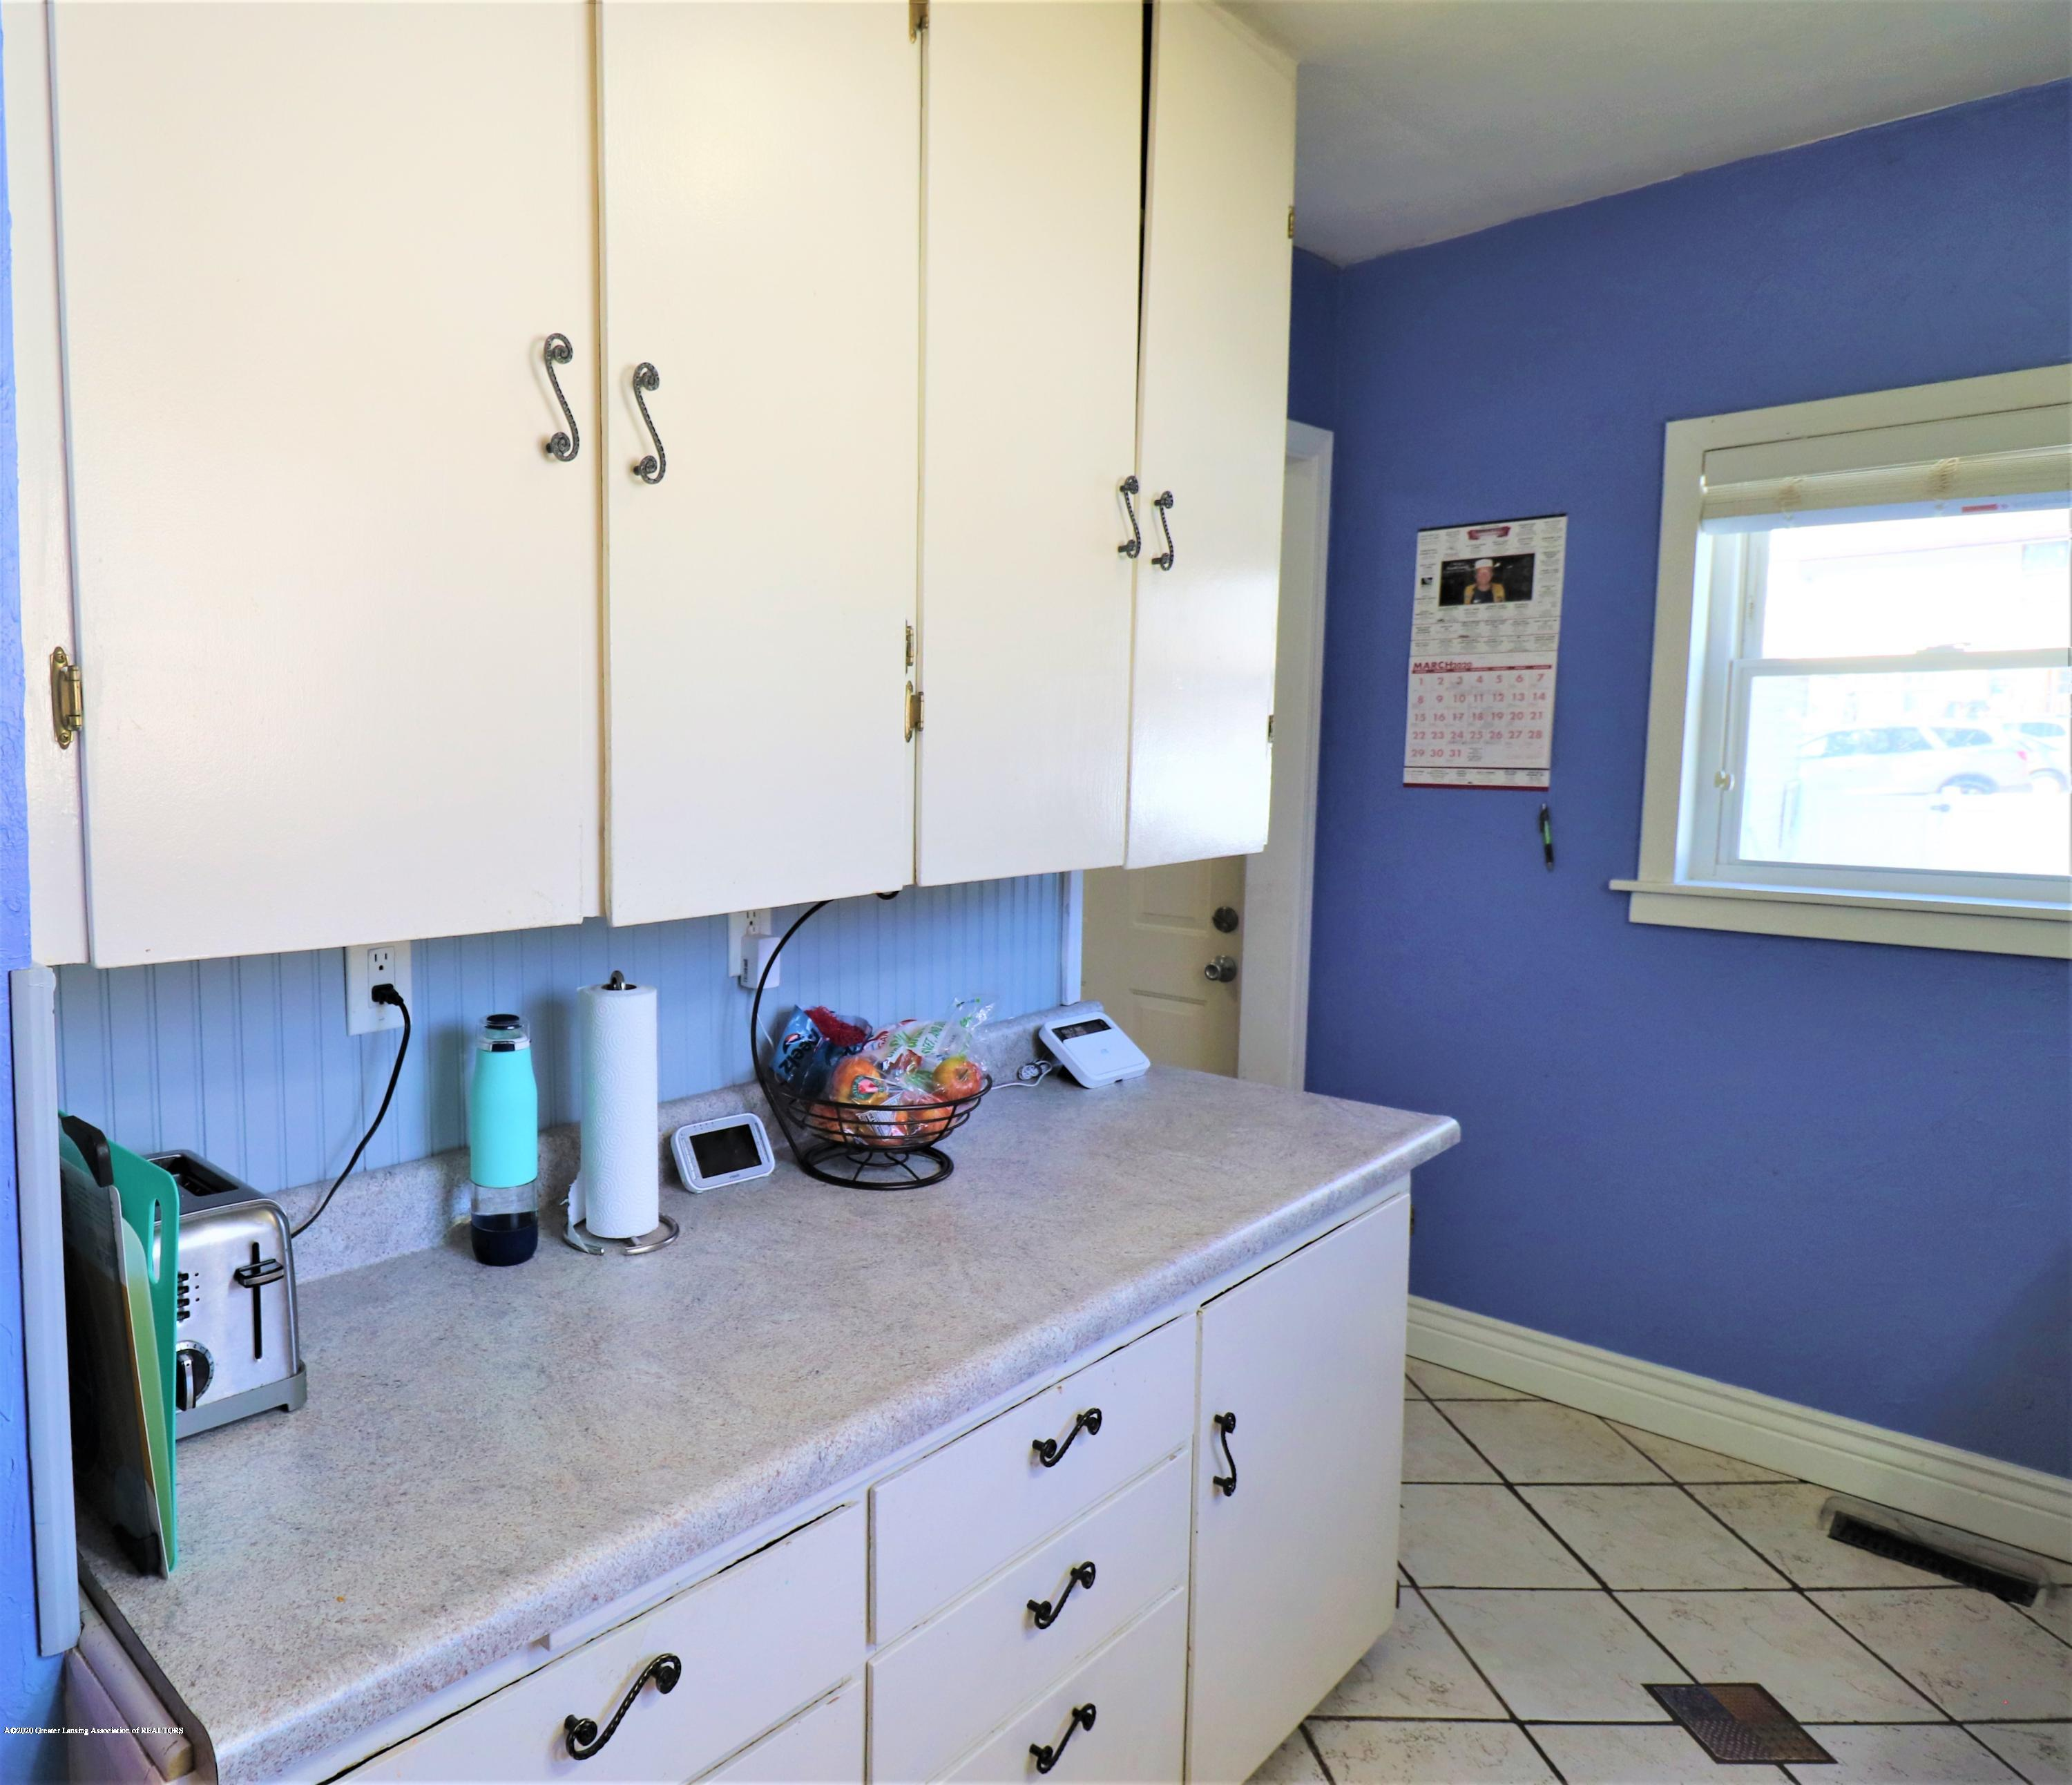 223 N Washington St - 12 KItchen - 12